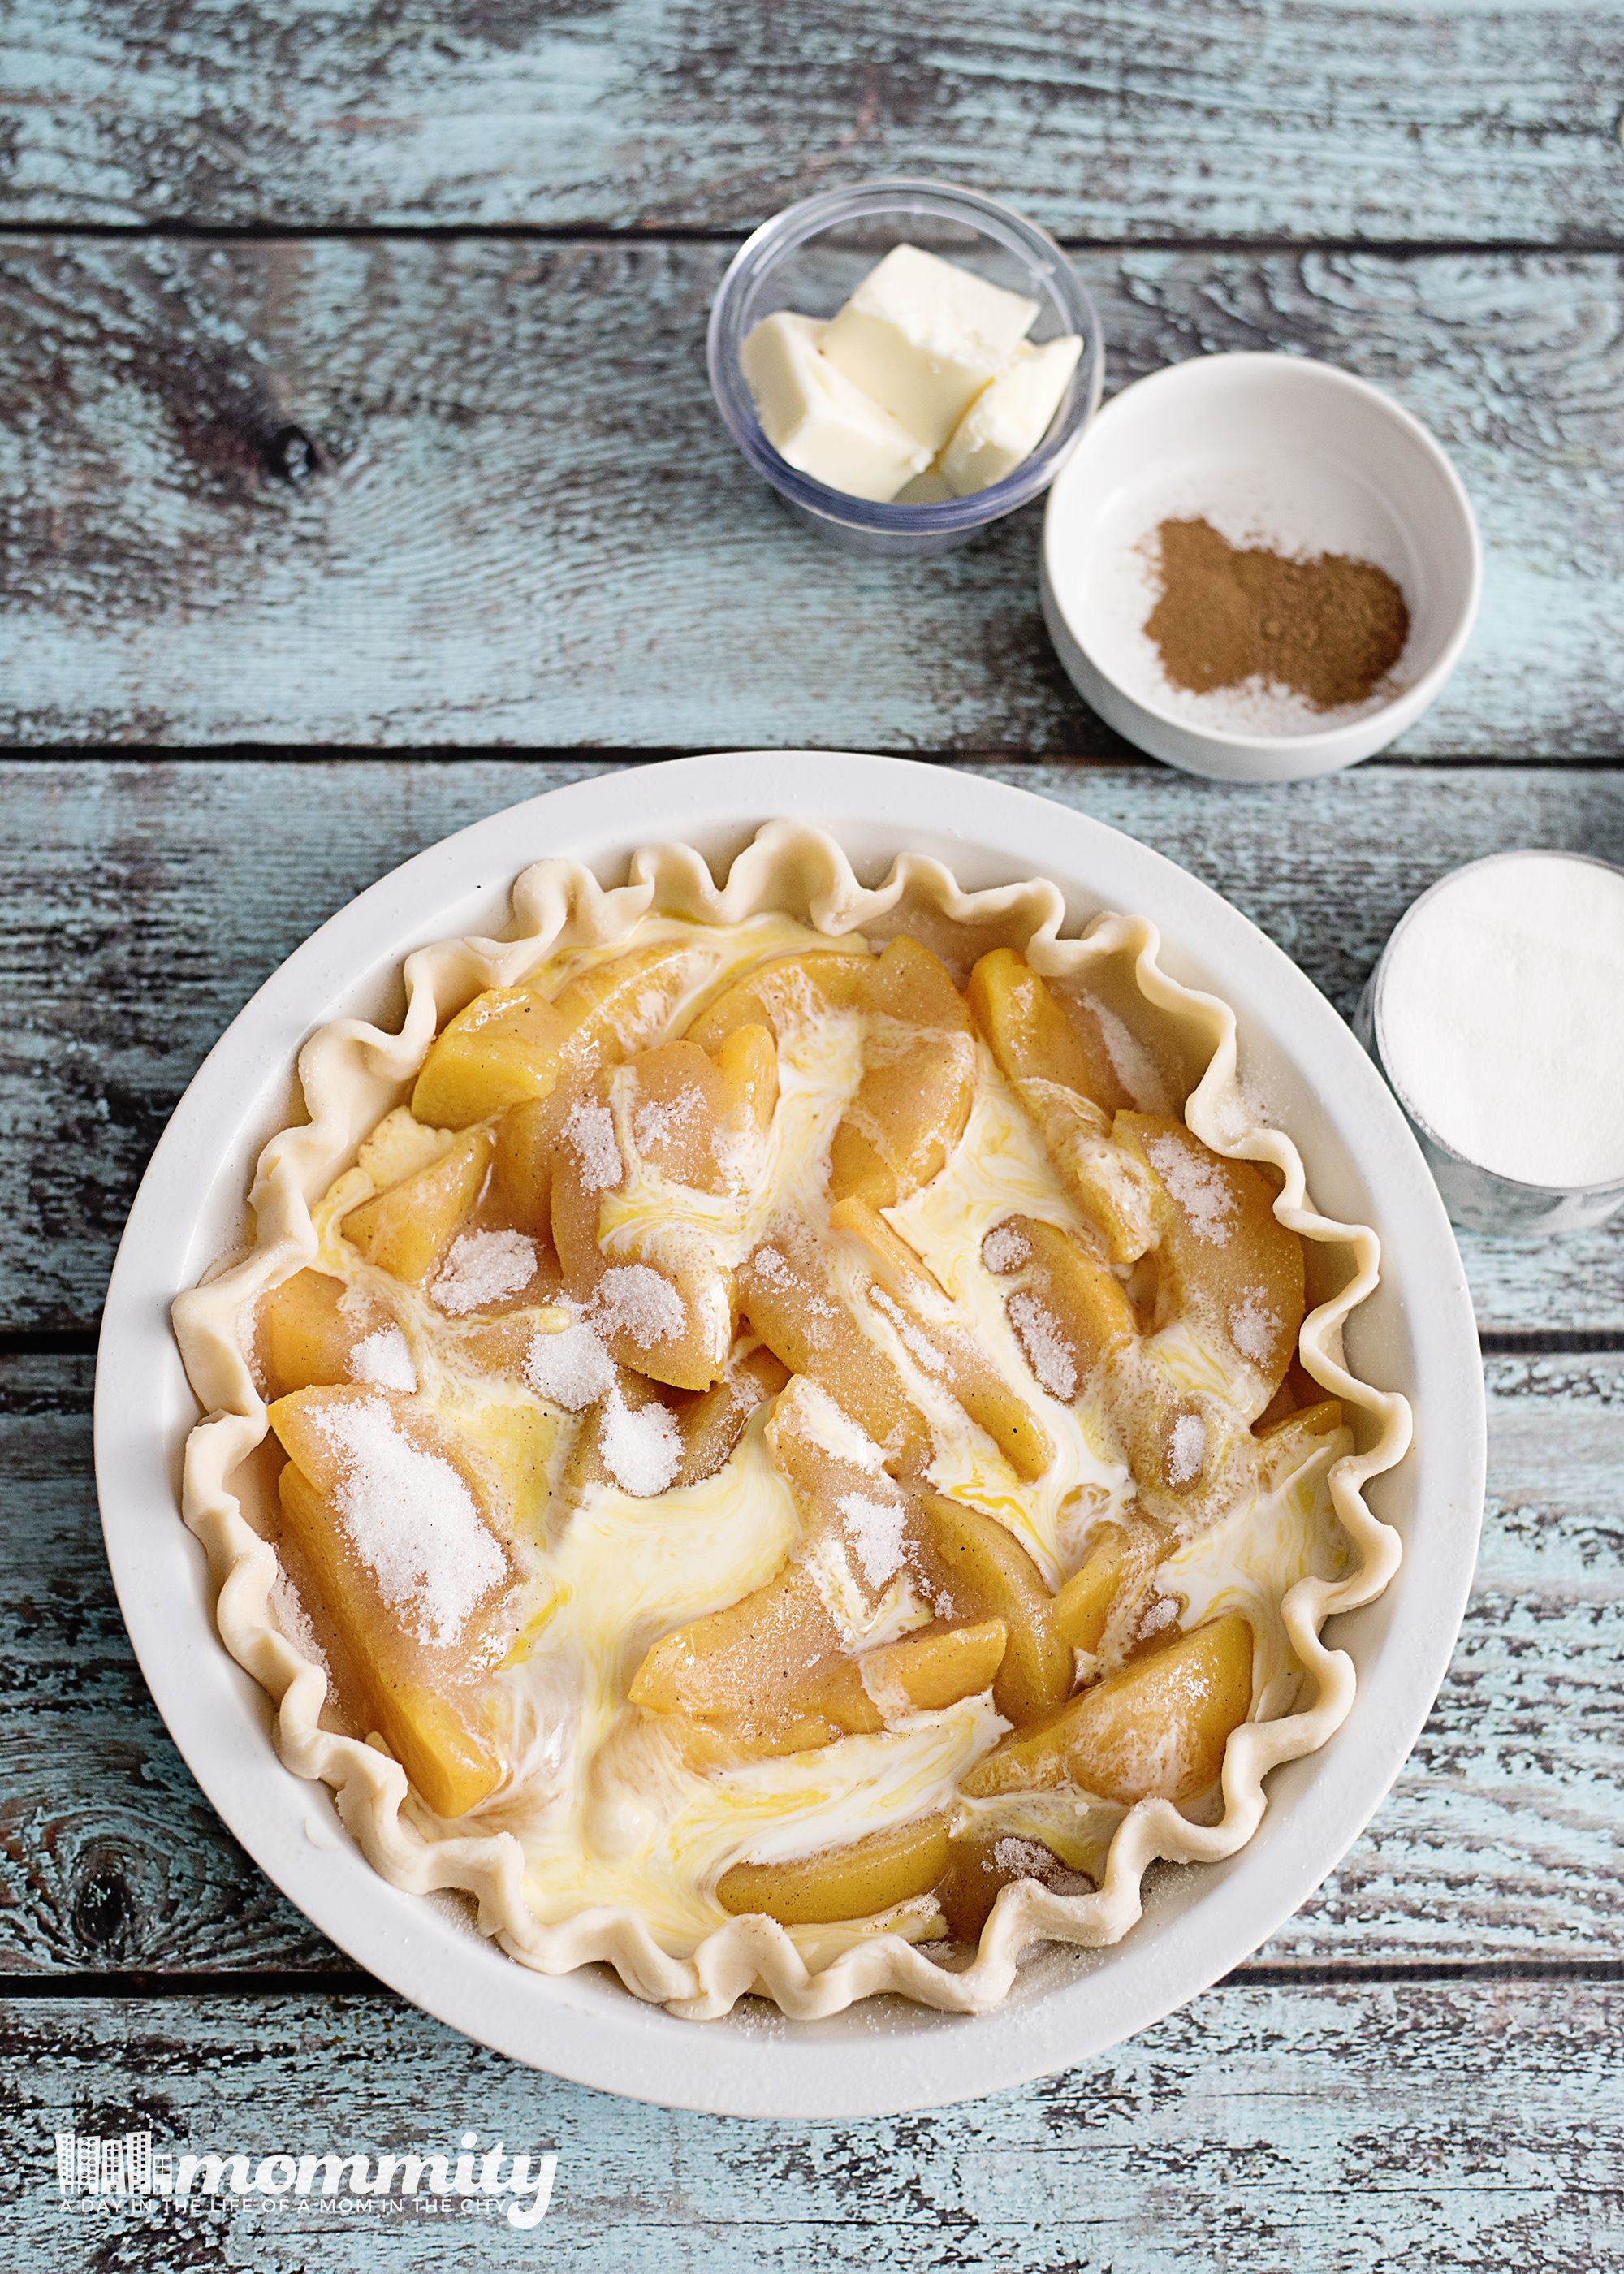 Delicious Peach Crumble Pie Recipe with Brown Sugar Topping